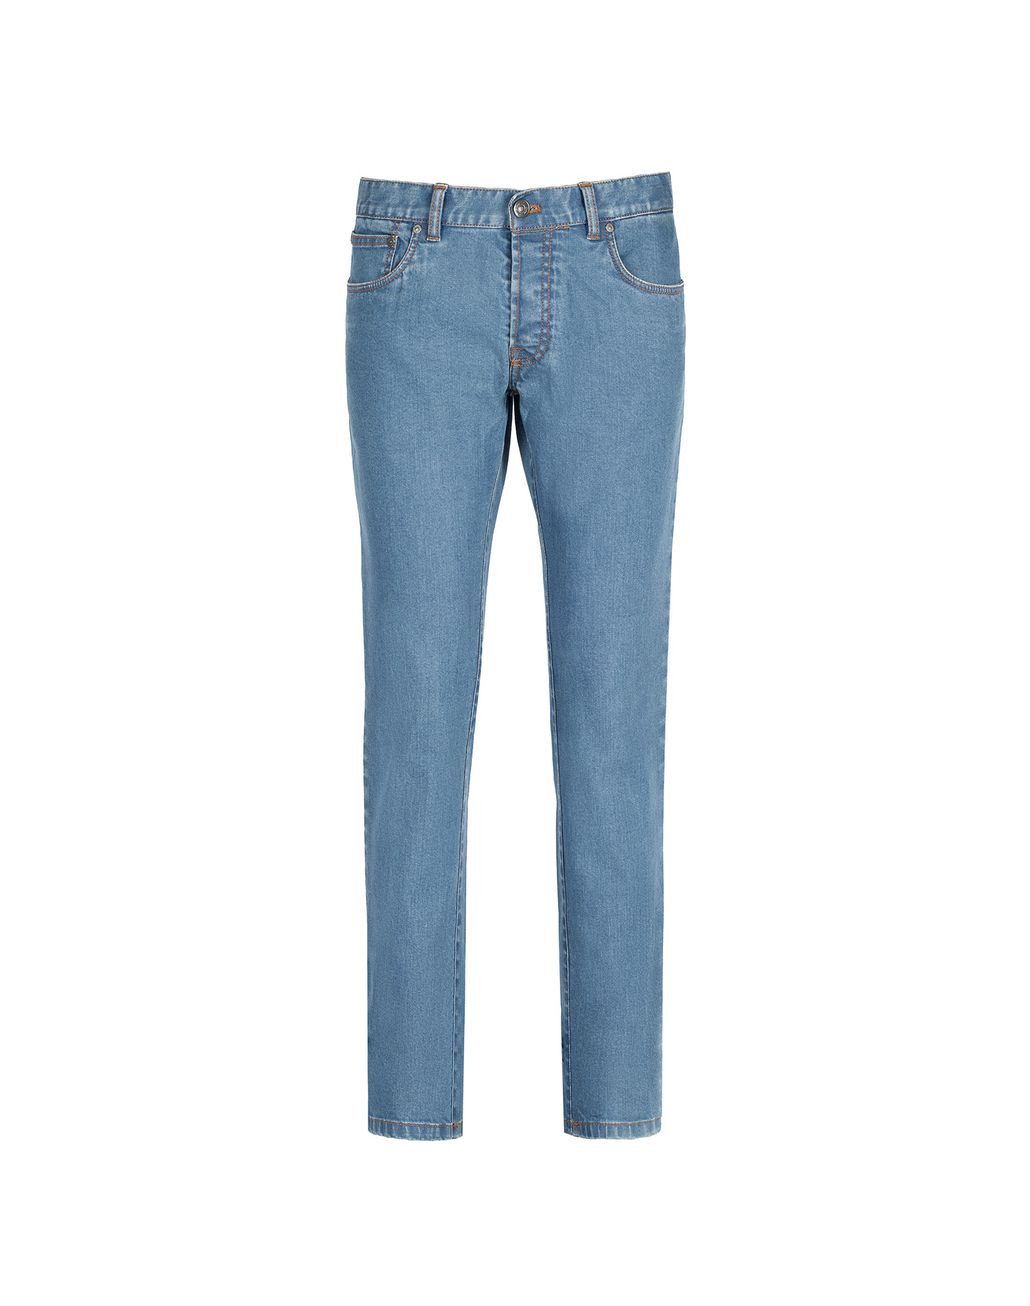 BRIONI Bluette Slim Fit Aneto Jeans Denim Man f